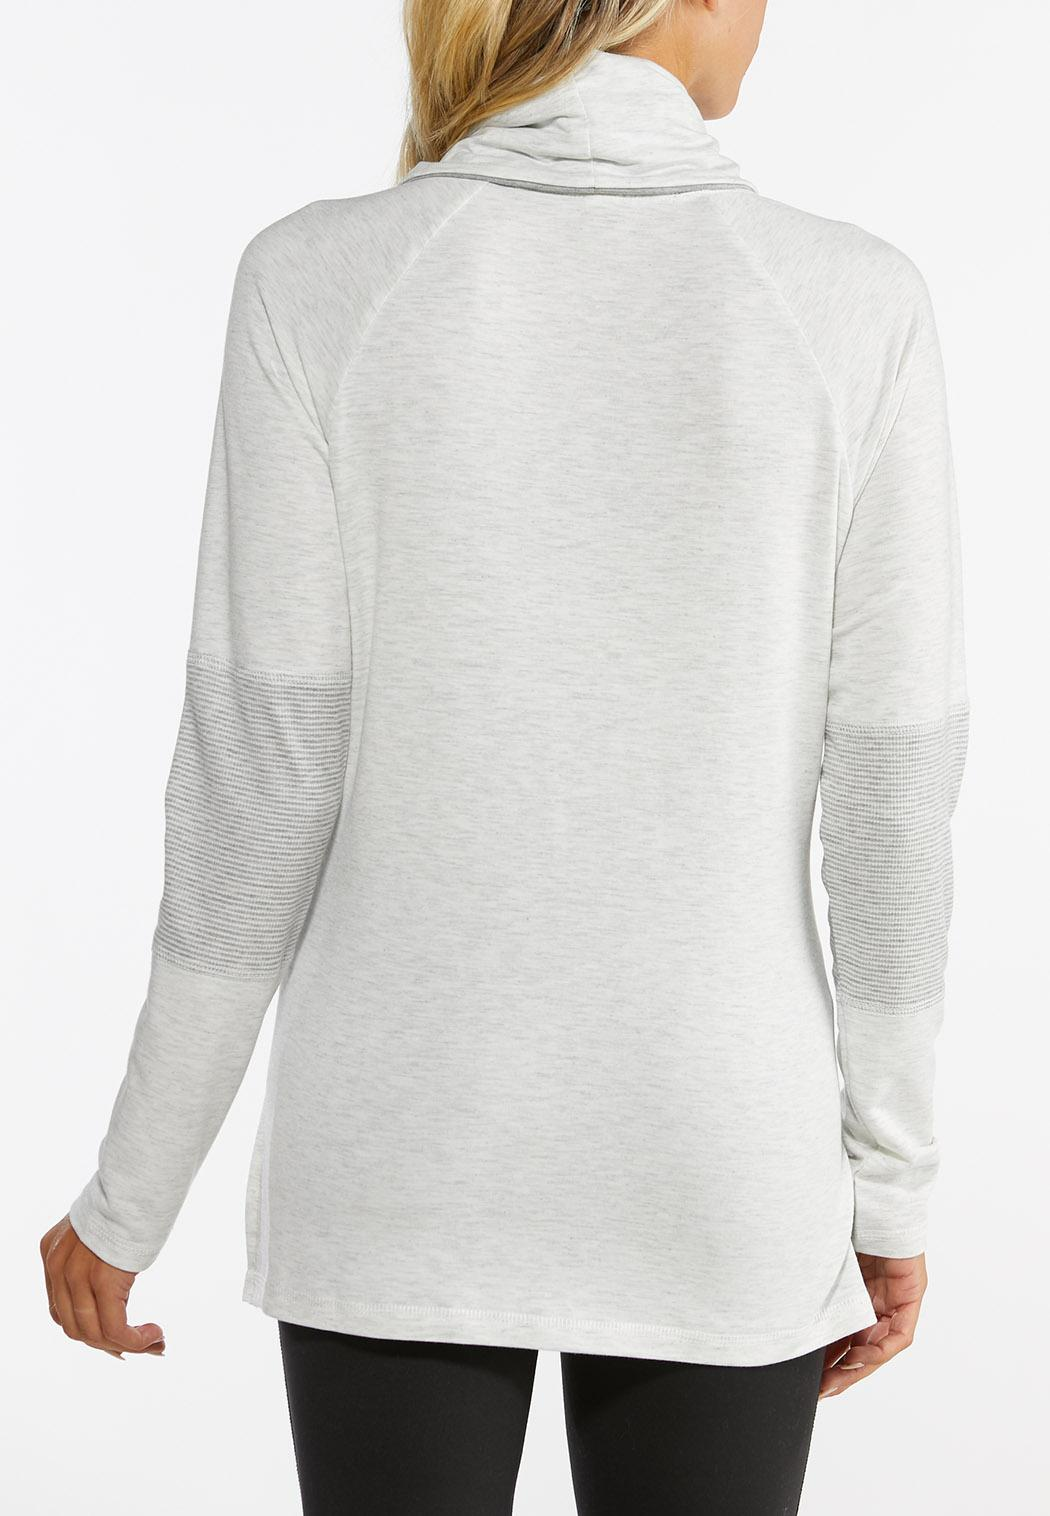 Ruffled Cowlneck Athleisure Top (Item #44437246)